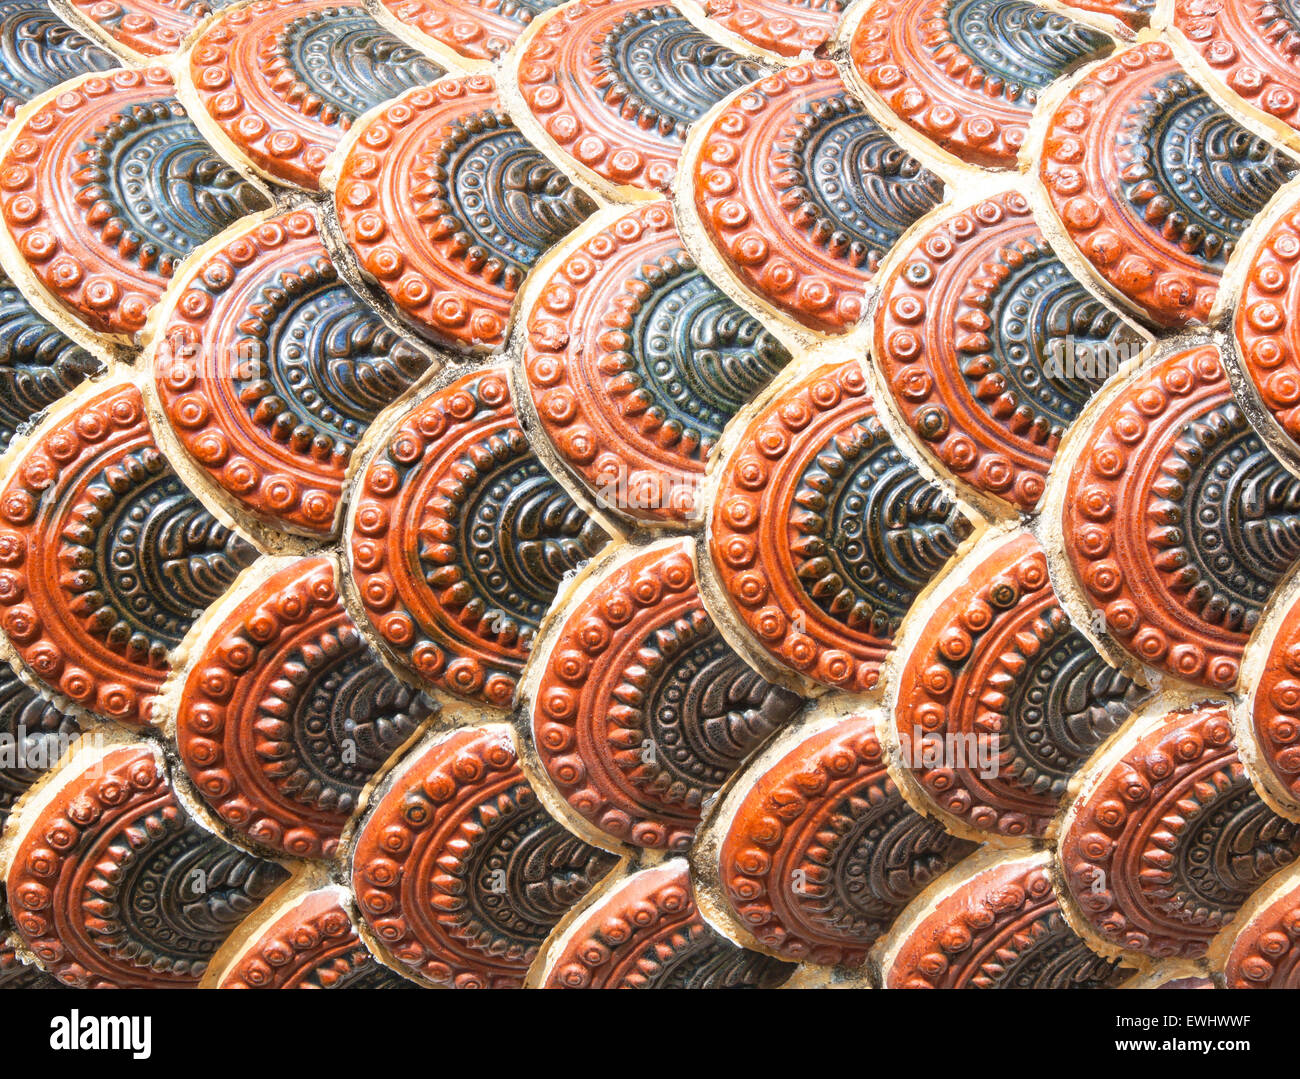 Scaly dragon background texture pattern background texture. - Stock Image